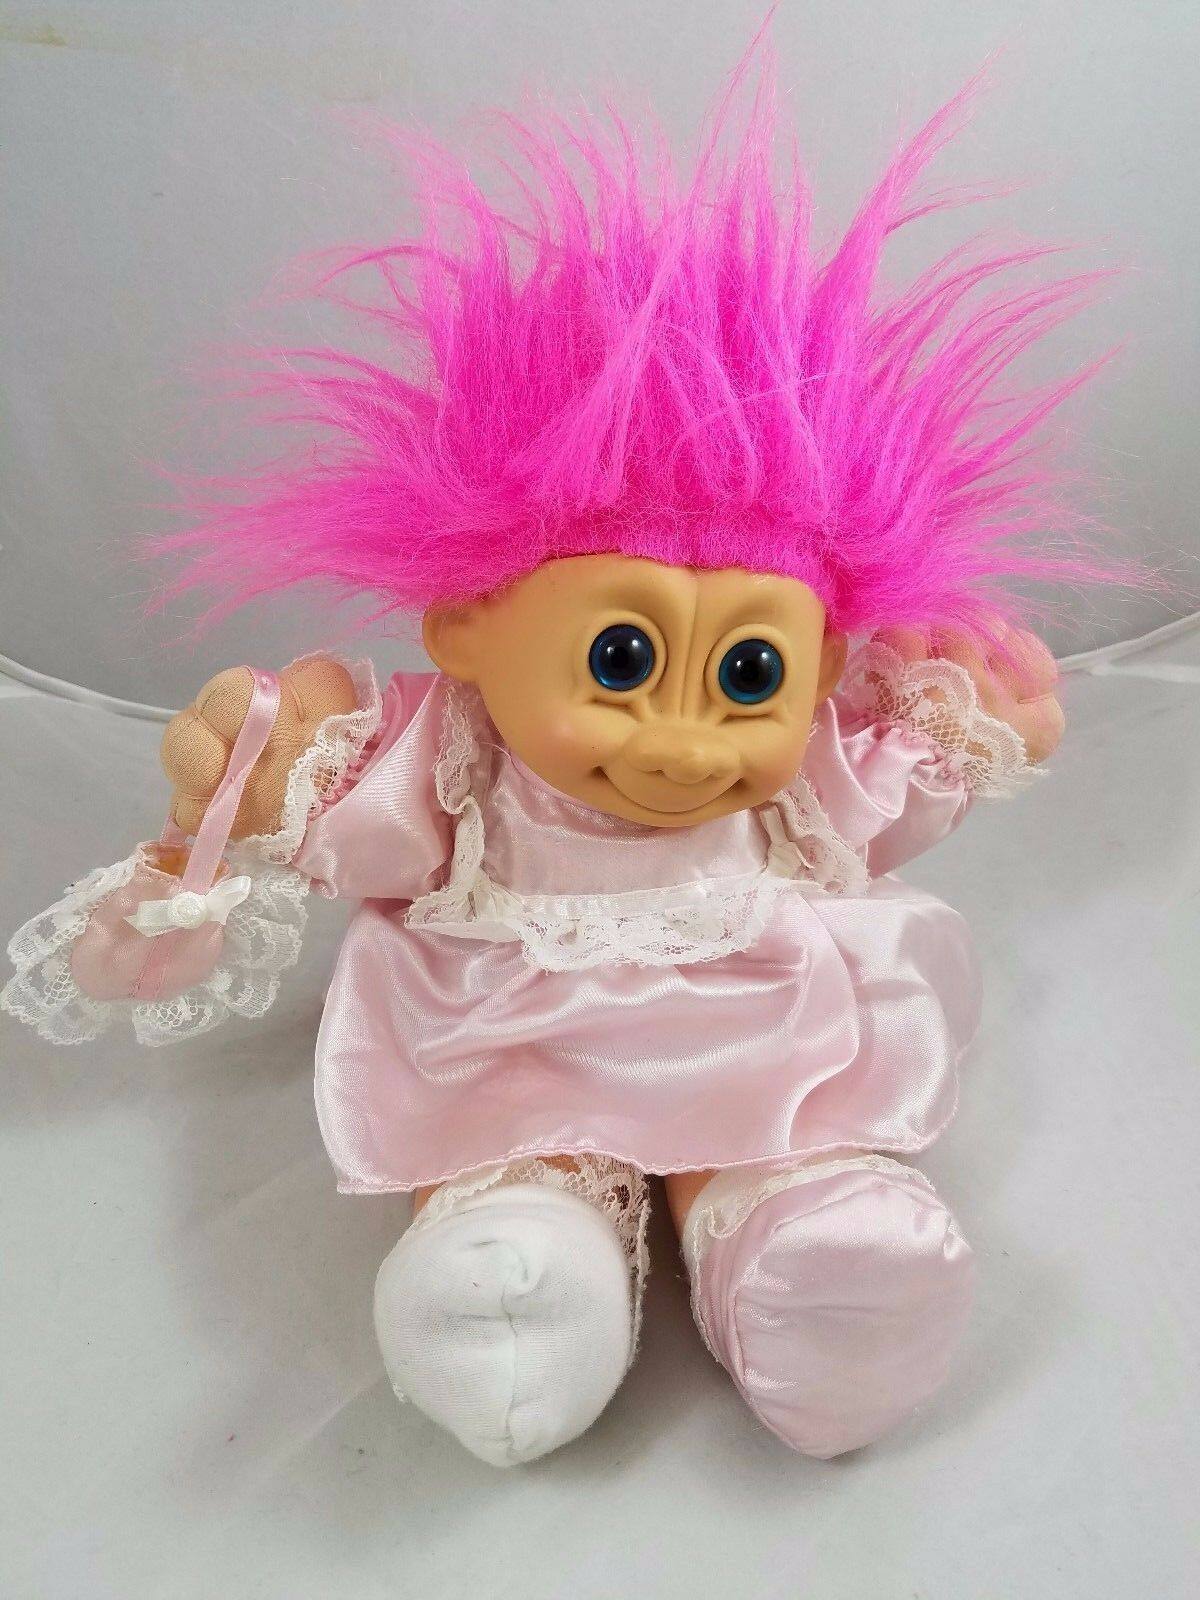 Vintage 12  RUSS BERRIE TROLL KIDZ DOLL 2325 PINK DRESS GIRL PLUSH 1990s STUFFED